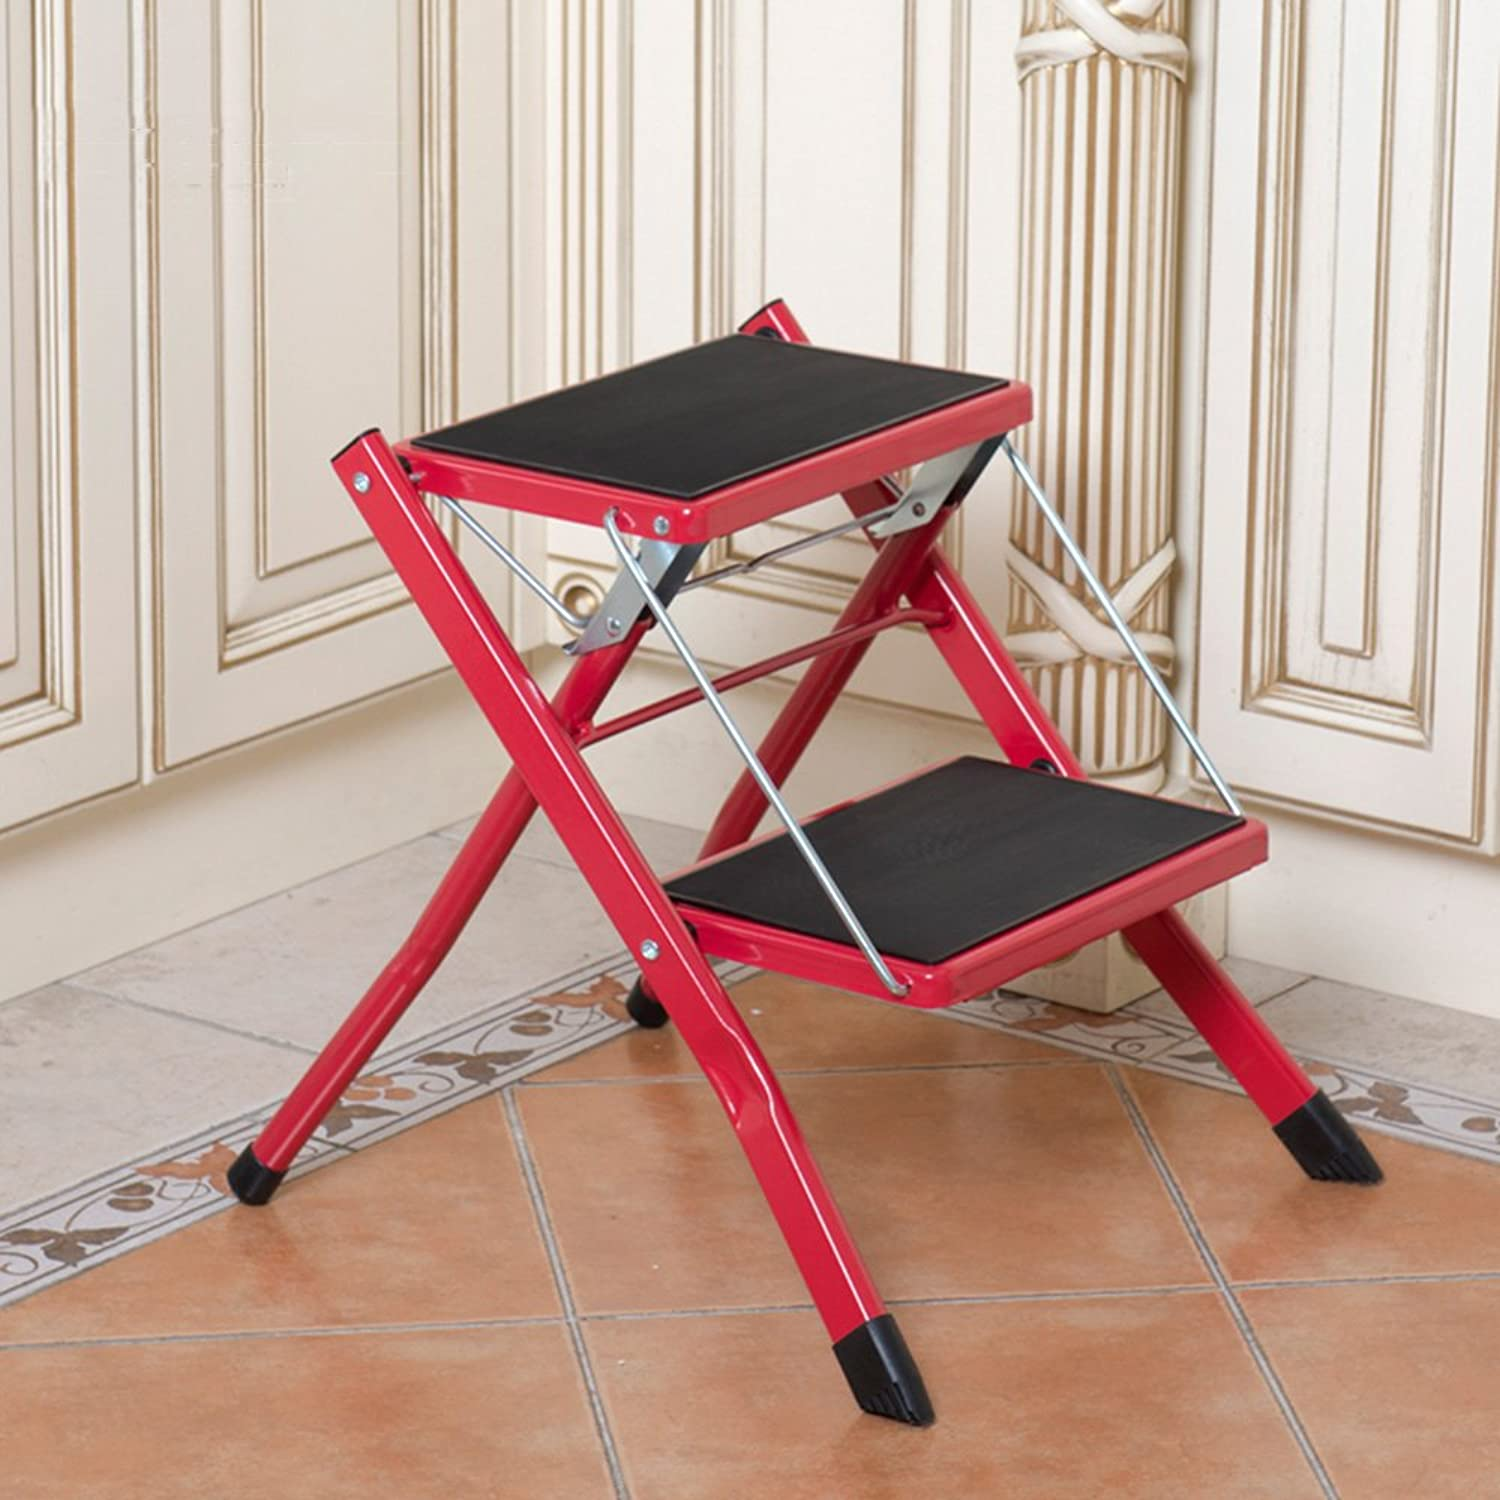 QFFL tideng Step Stools Indoor Folding Step Stool Household Two-Step Ladder Anti-Skid Ascends The High Ladder (color   RED)